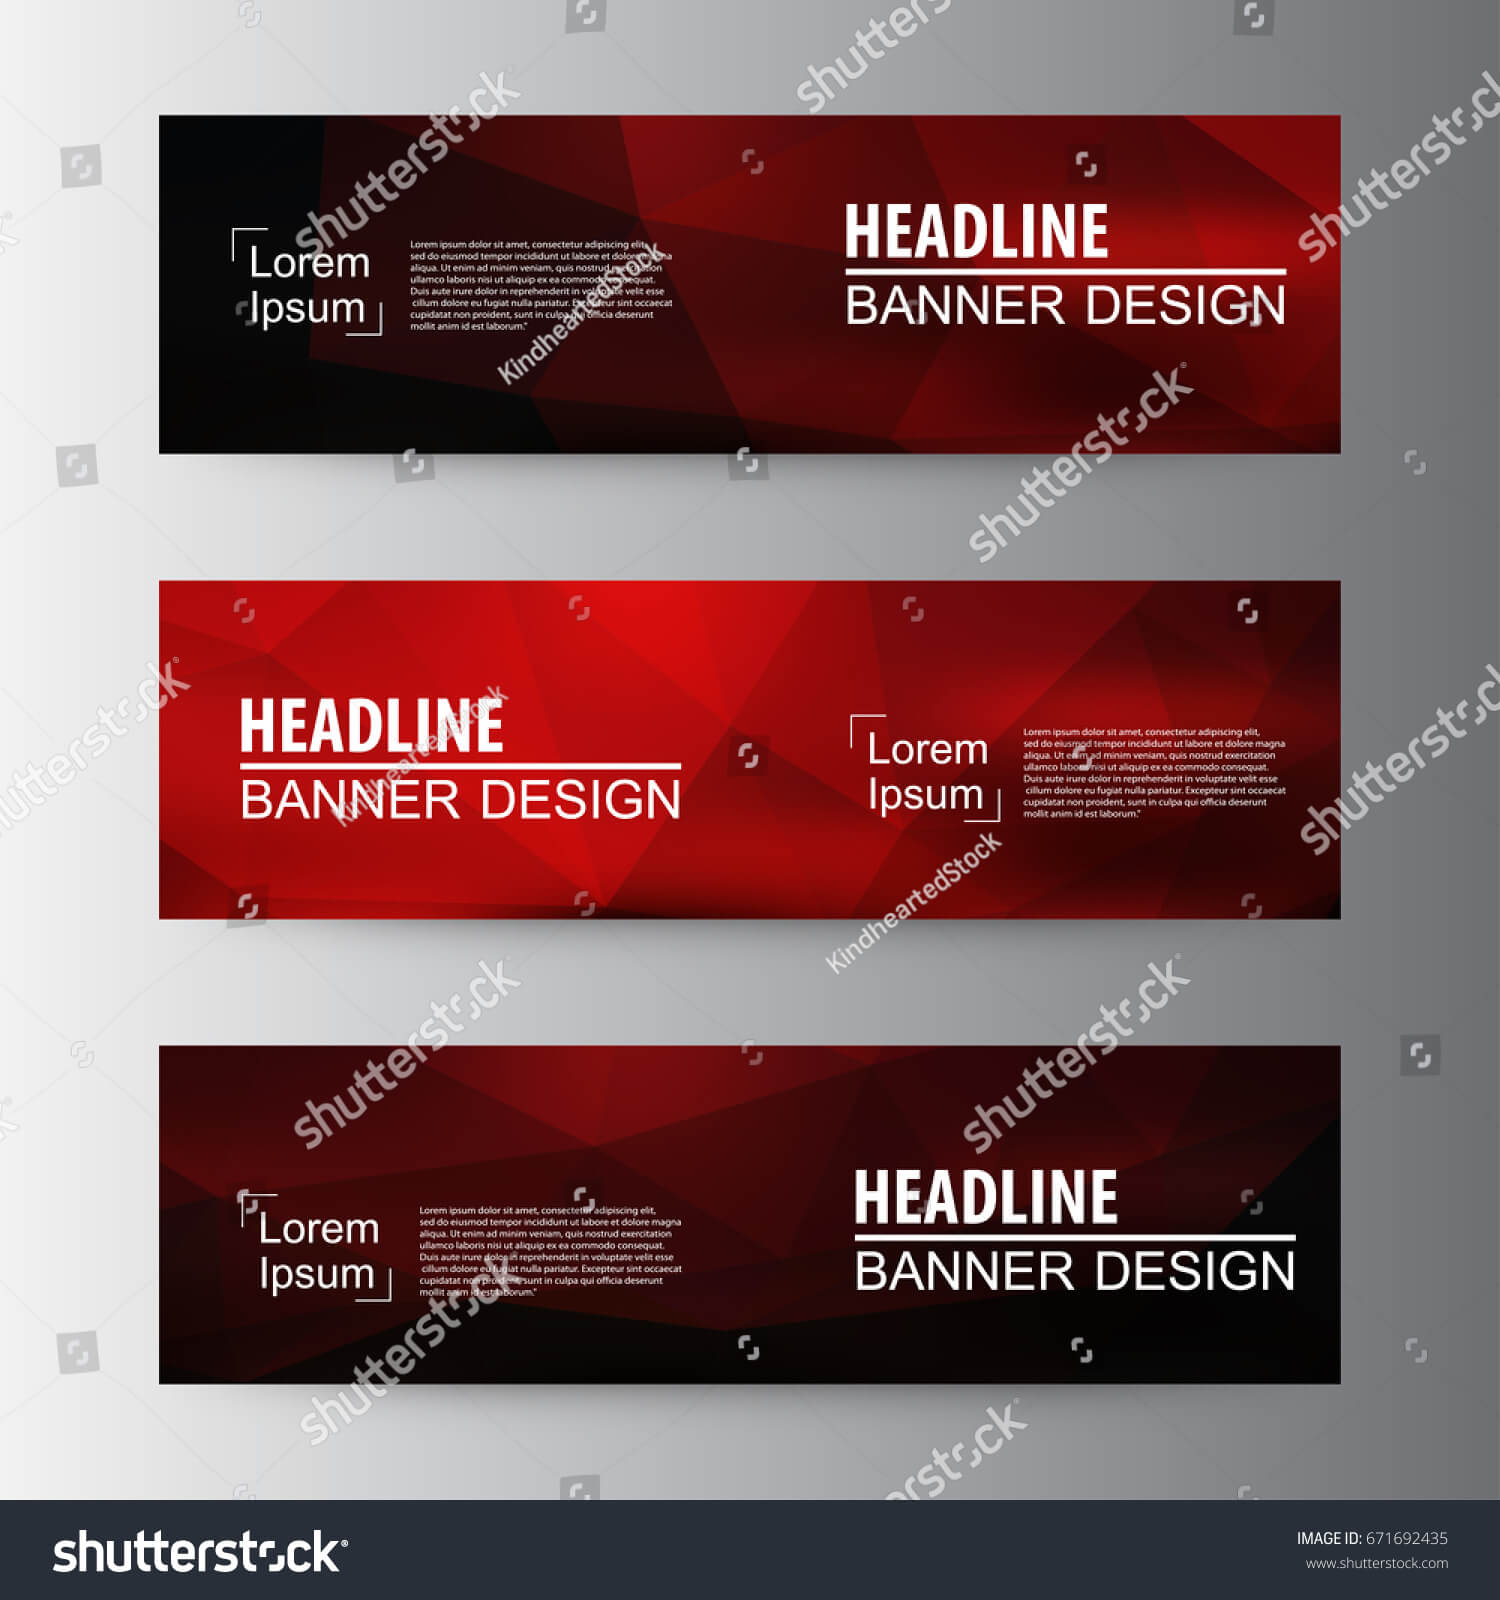 Abstract Geometric Vector Web Banner Design Stock Vector For Website Banner Design Templates